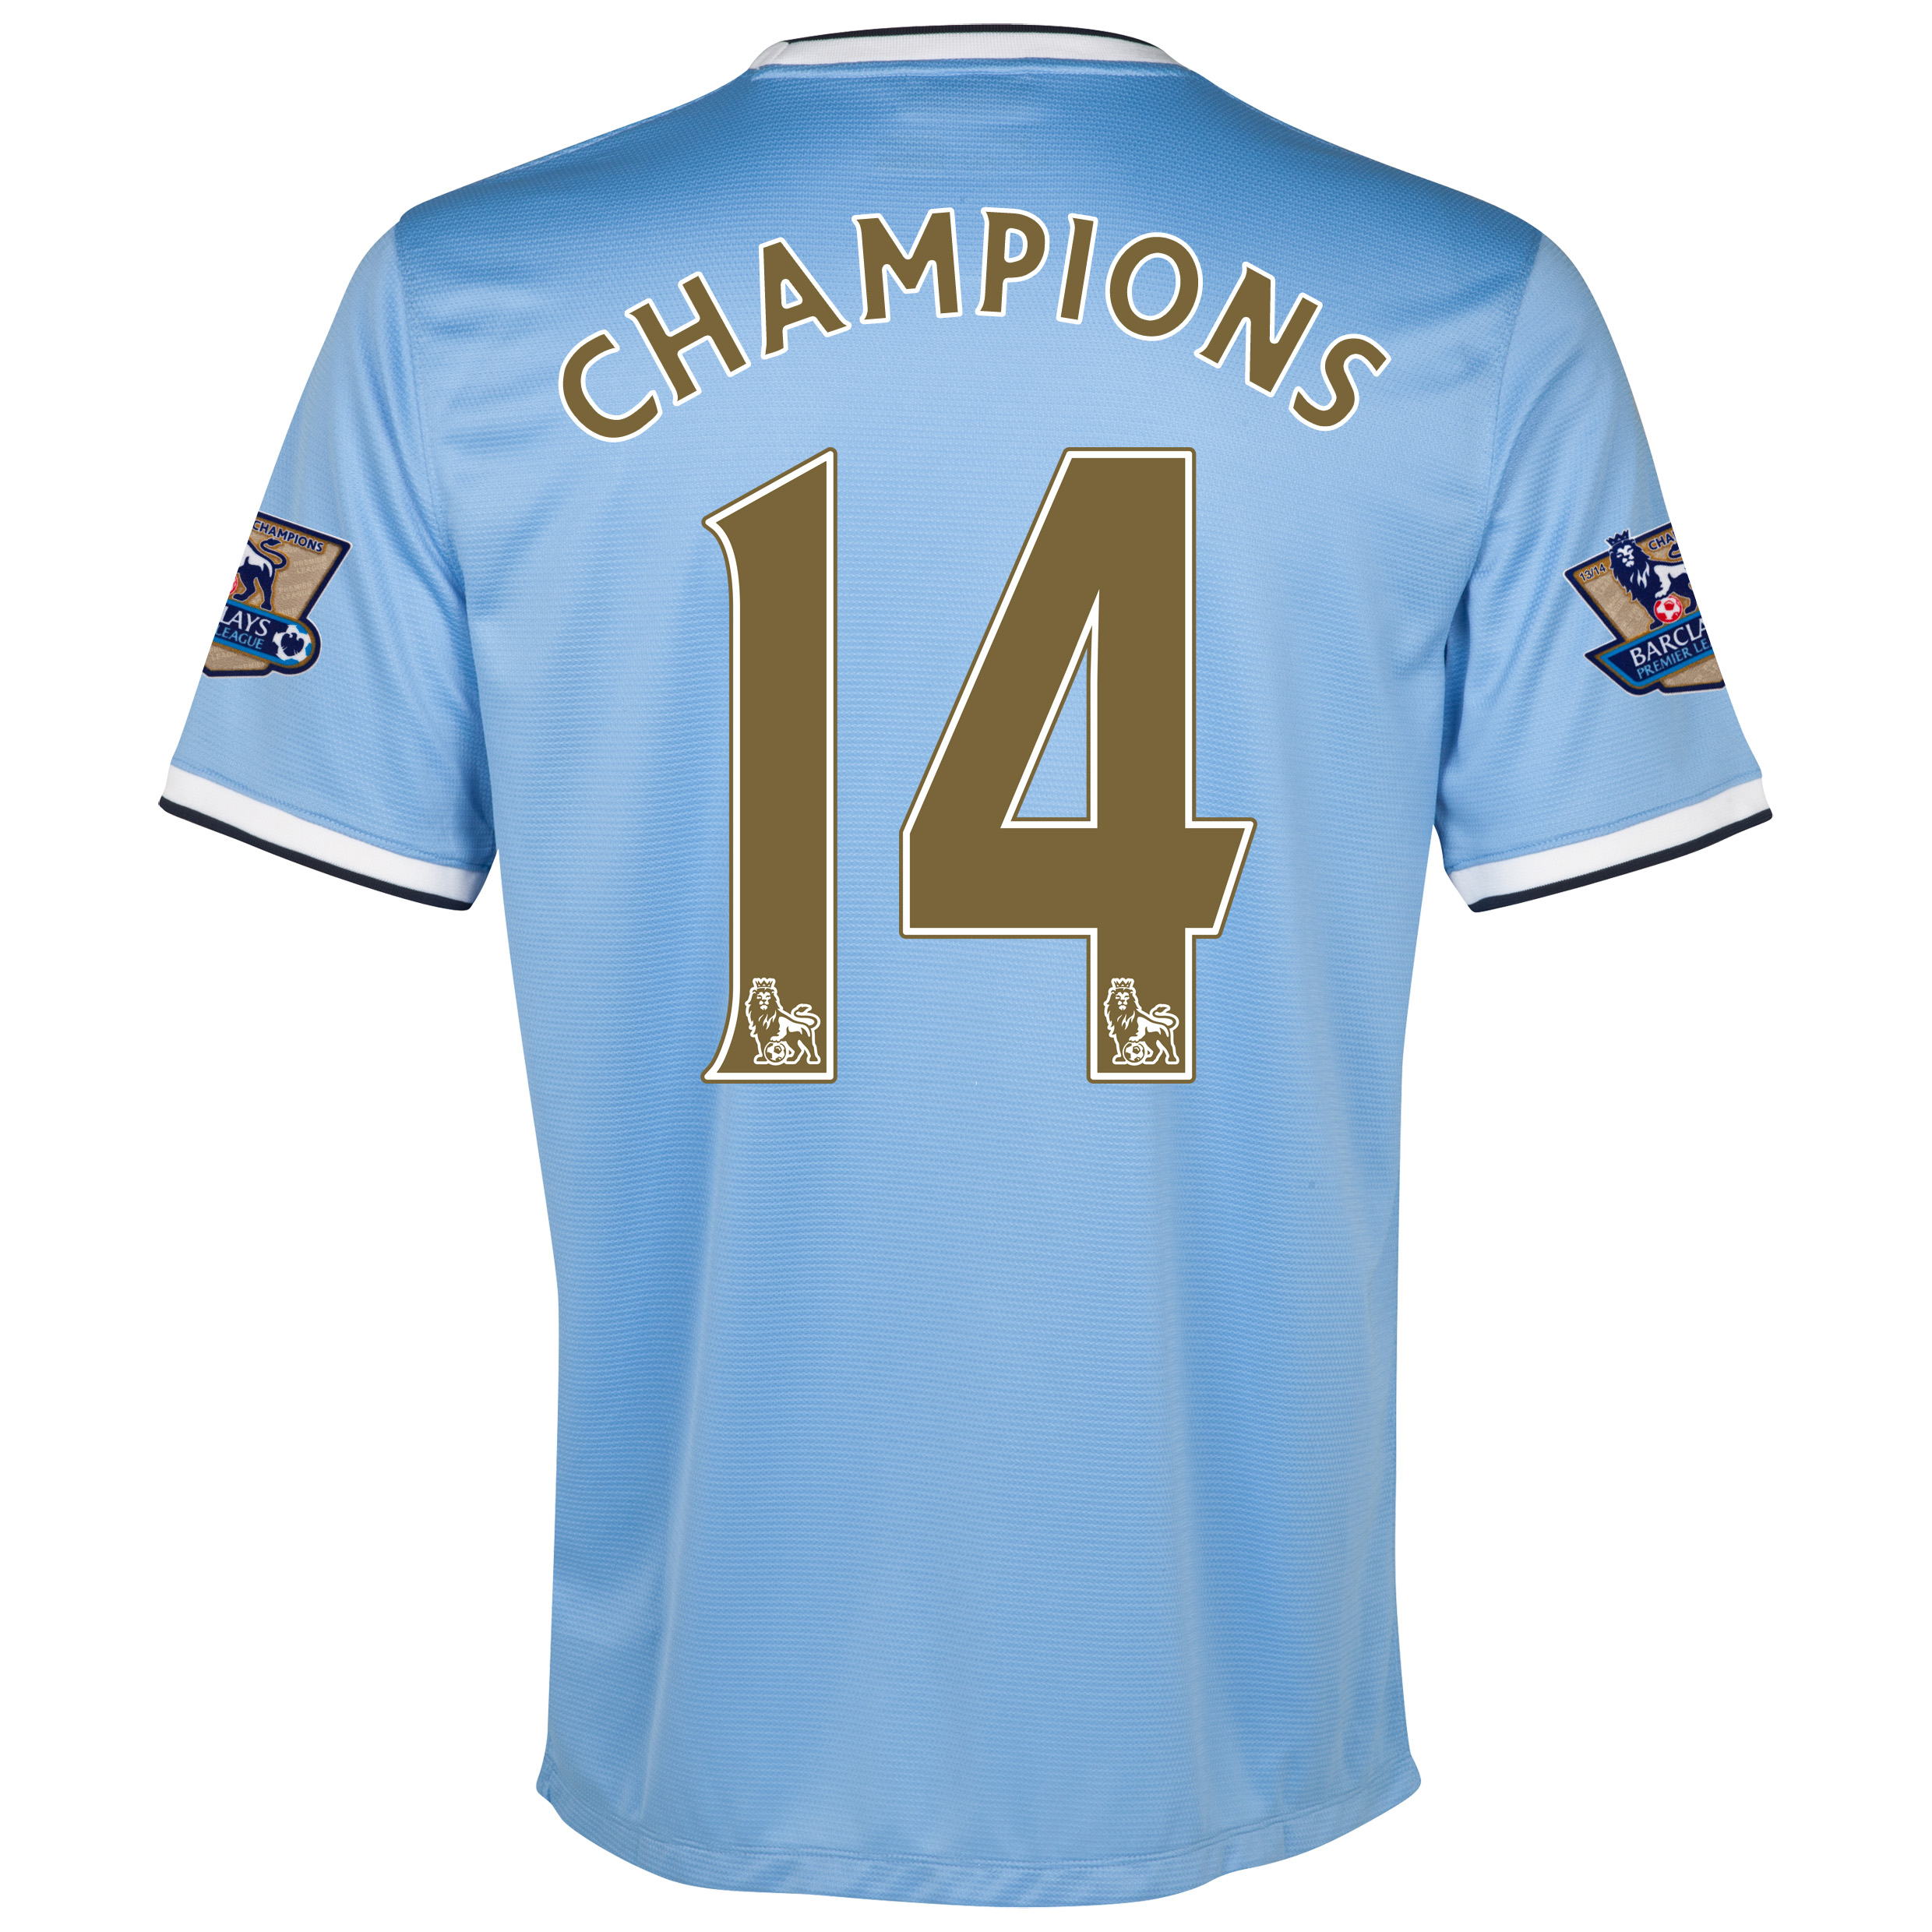 Manchester City Home Shirt 2013/14 with Champions 14 printing including Champions Badges